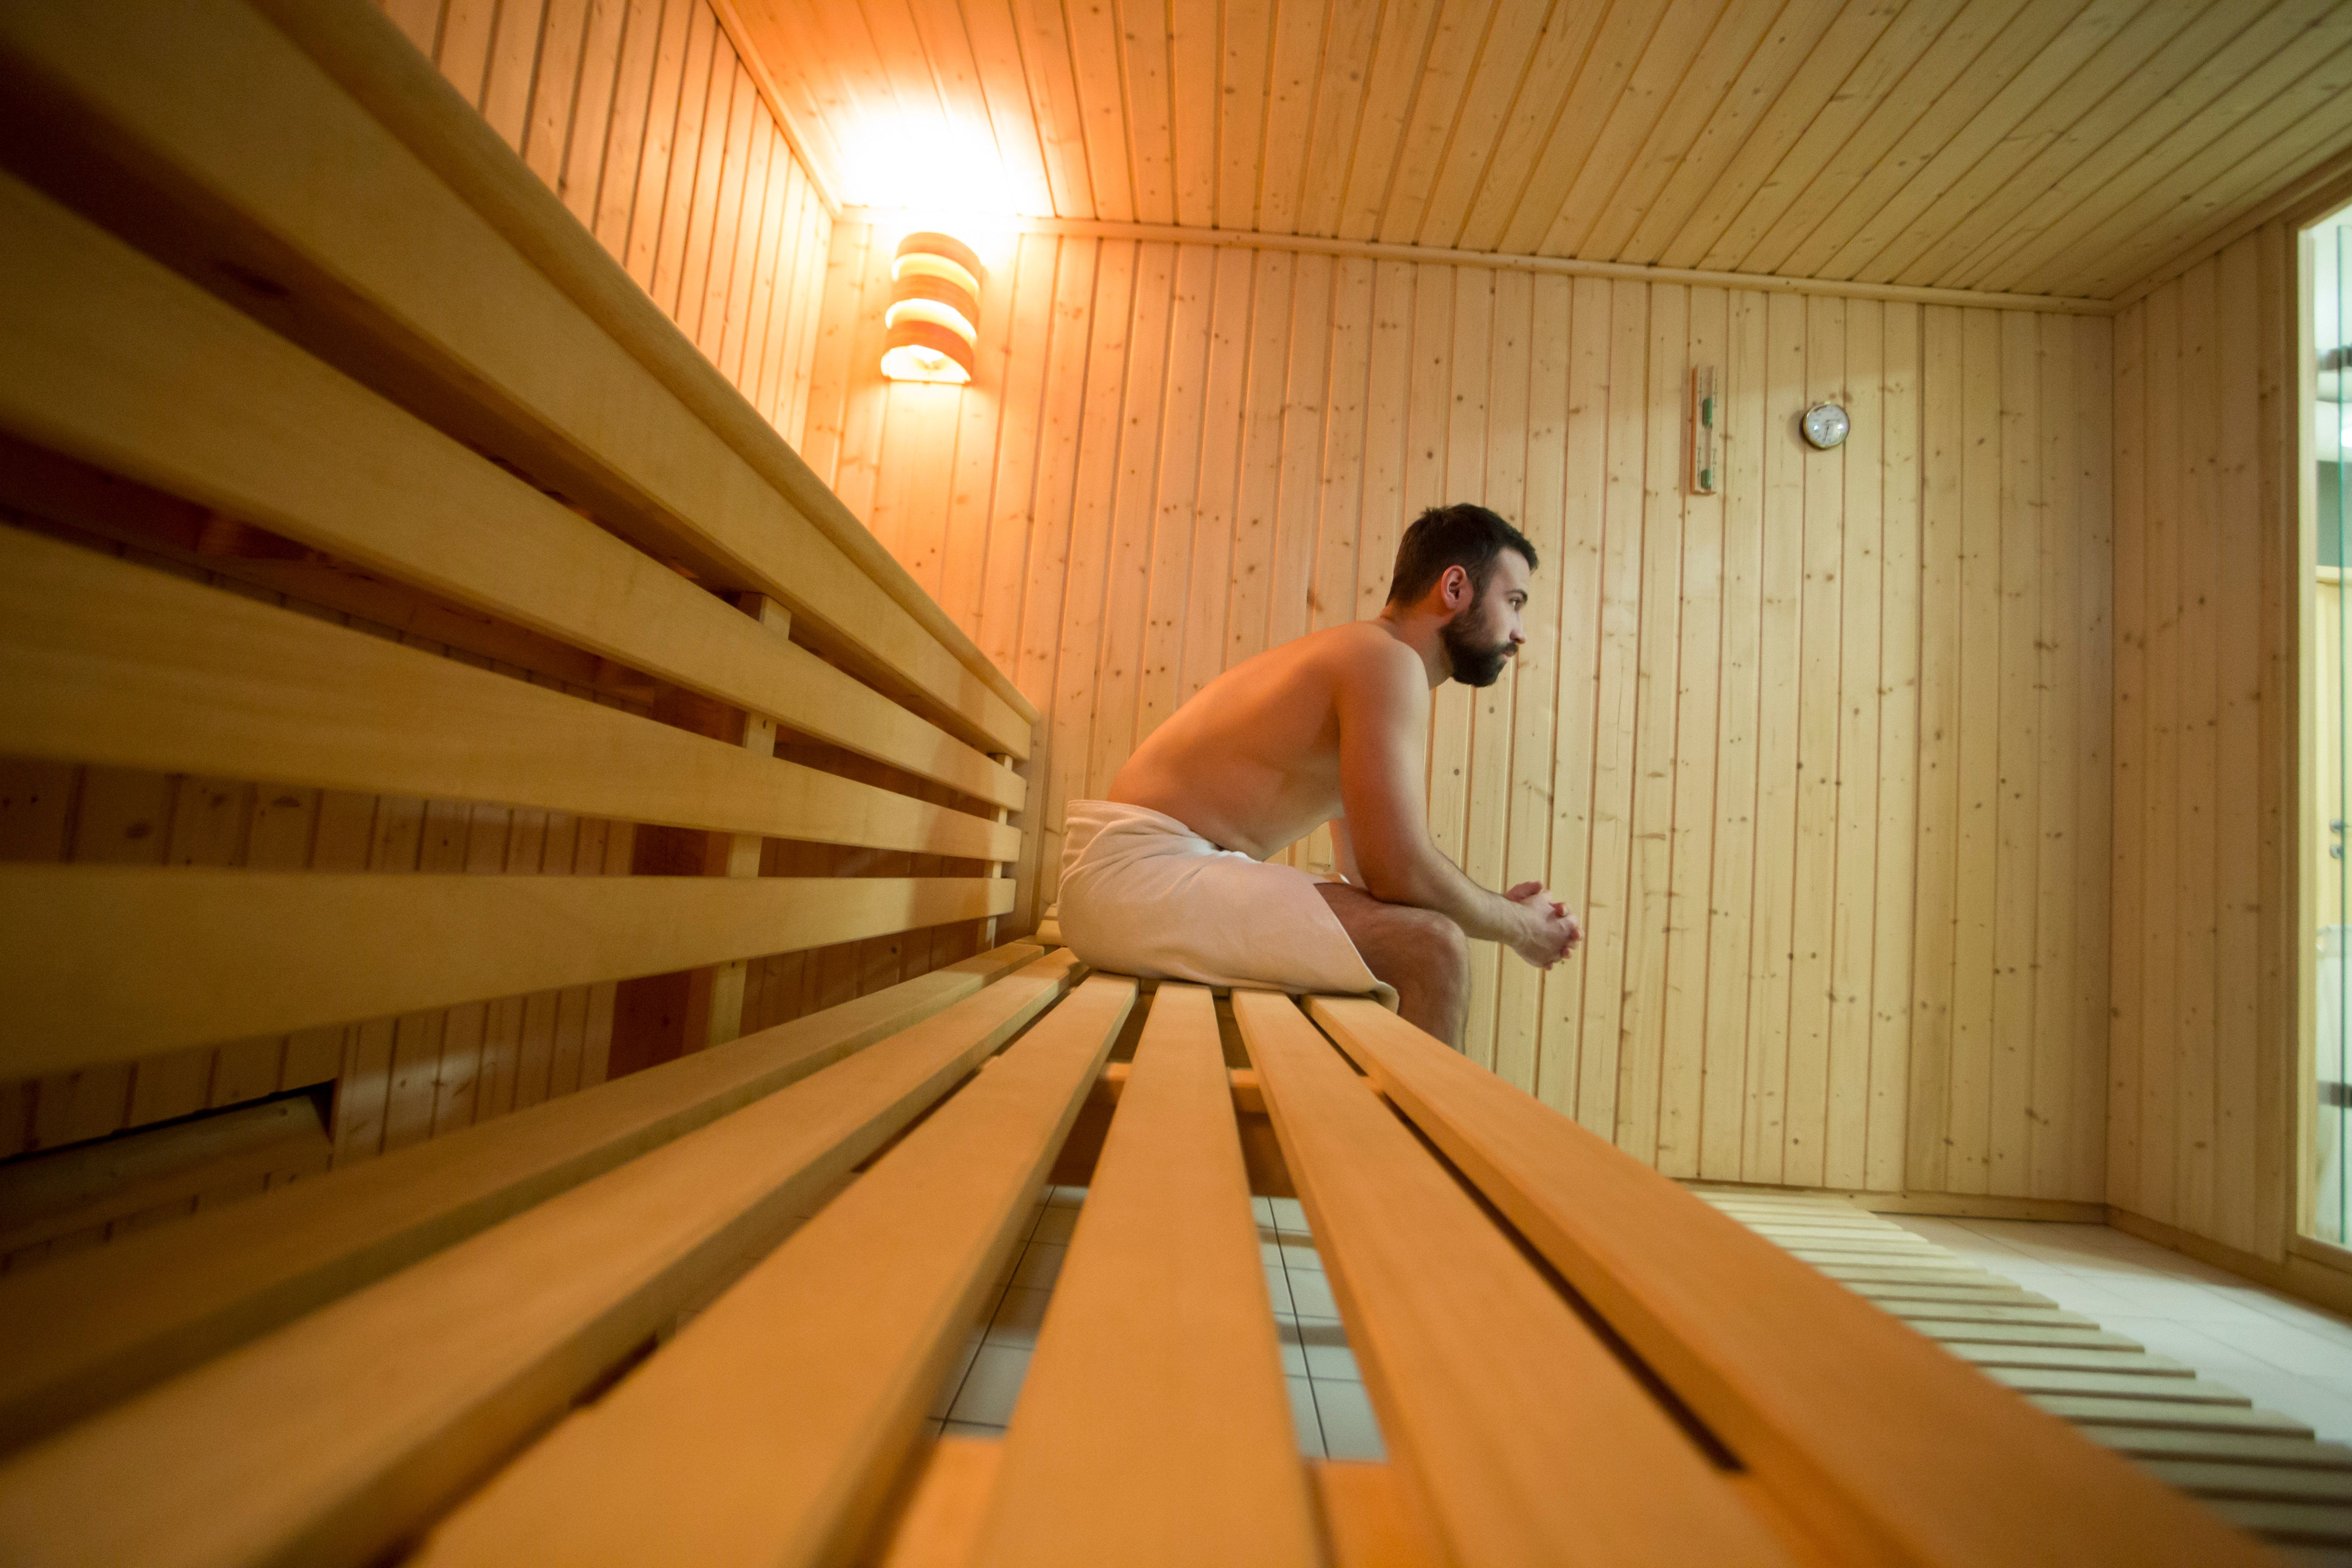 How Sanitary Are Steam Rooms And Saunas Anyway Huffpost Life